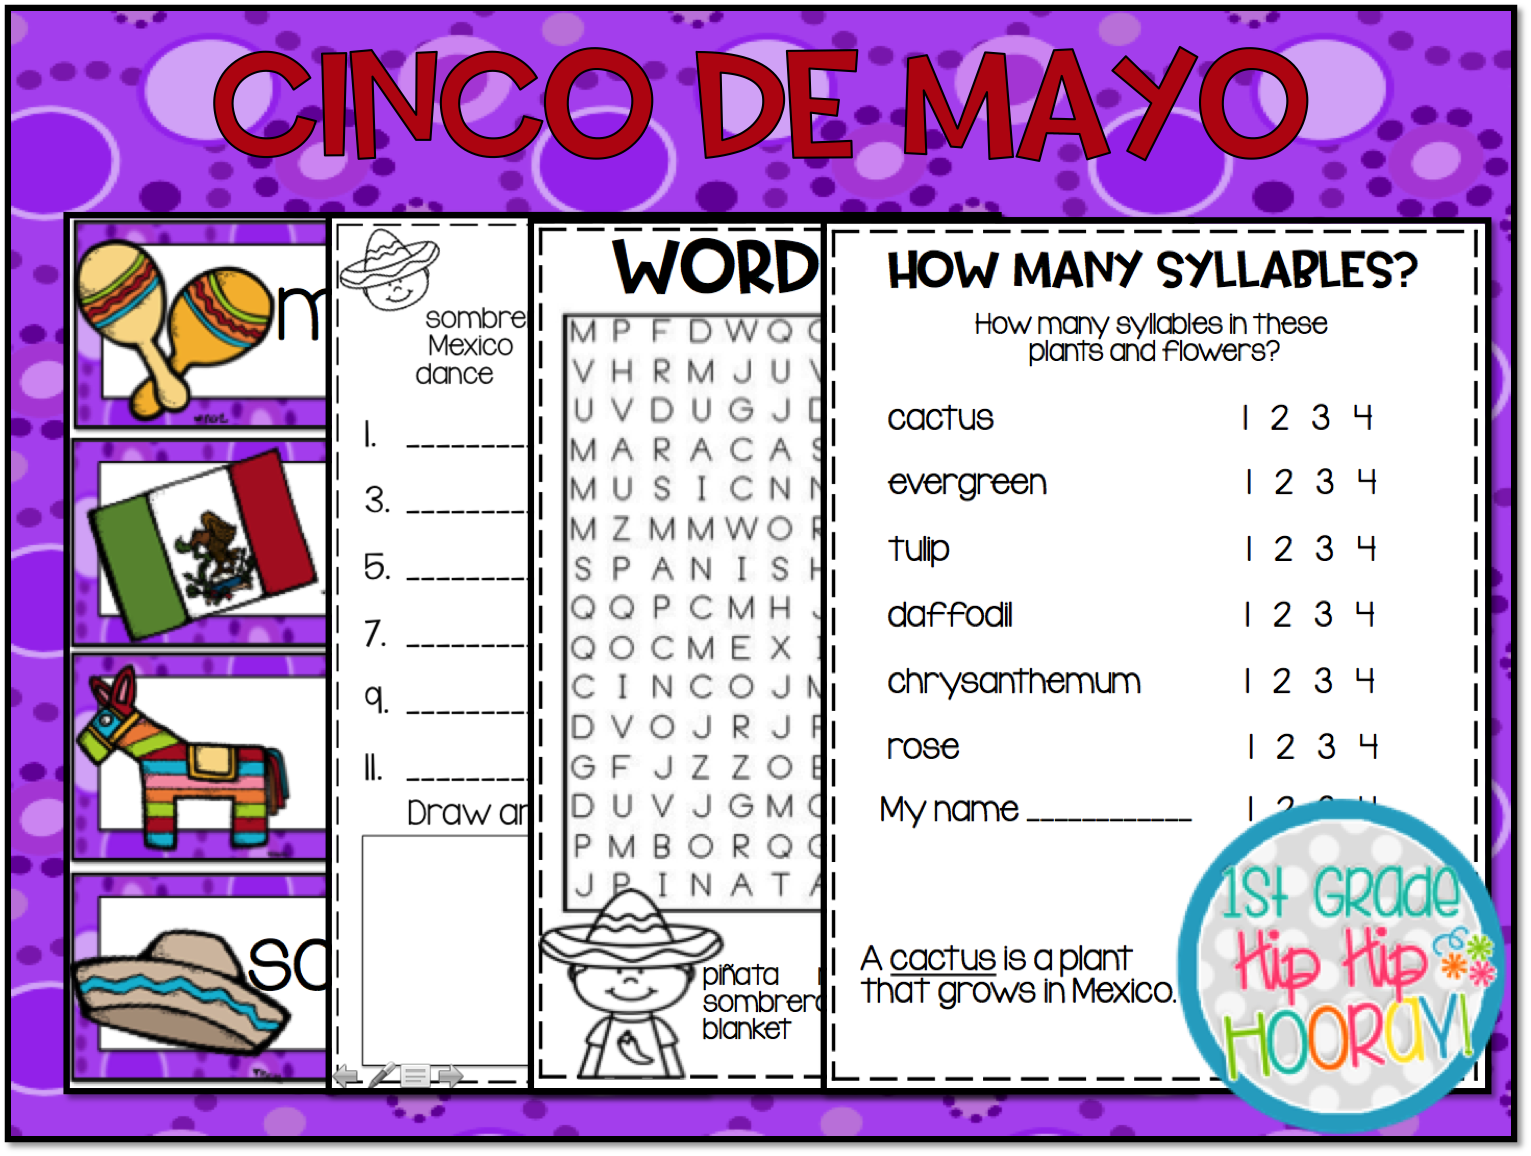 1st Grade Hip Hip Hooray Cinco De Mayo Y 5th